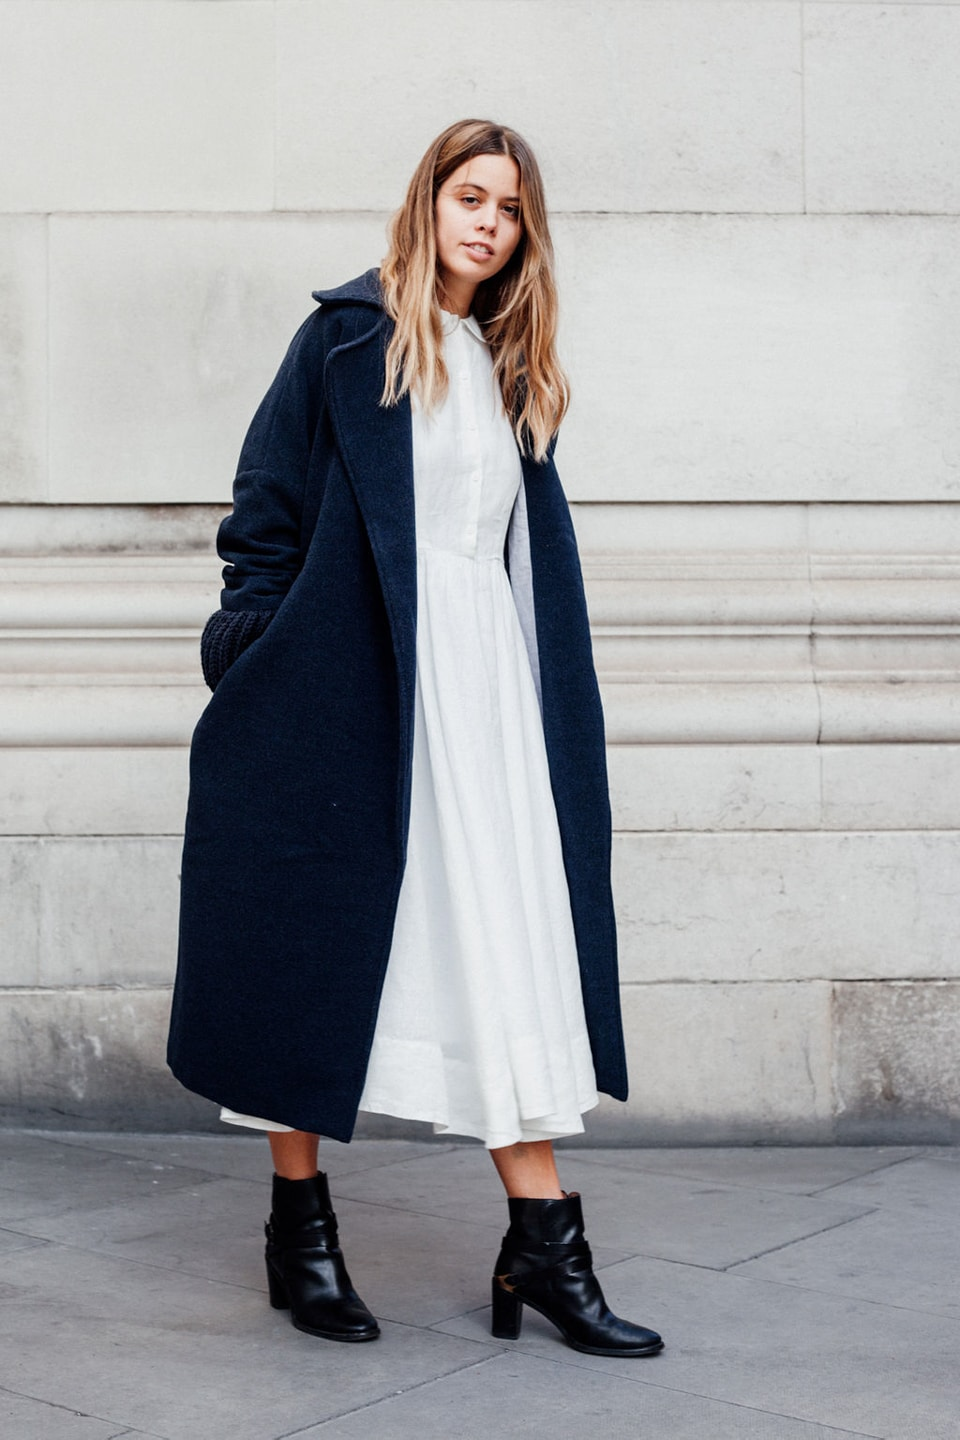 Jil wears white dress with navy coat